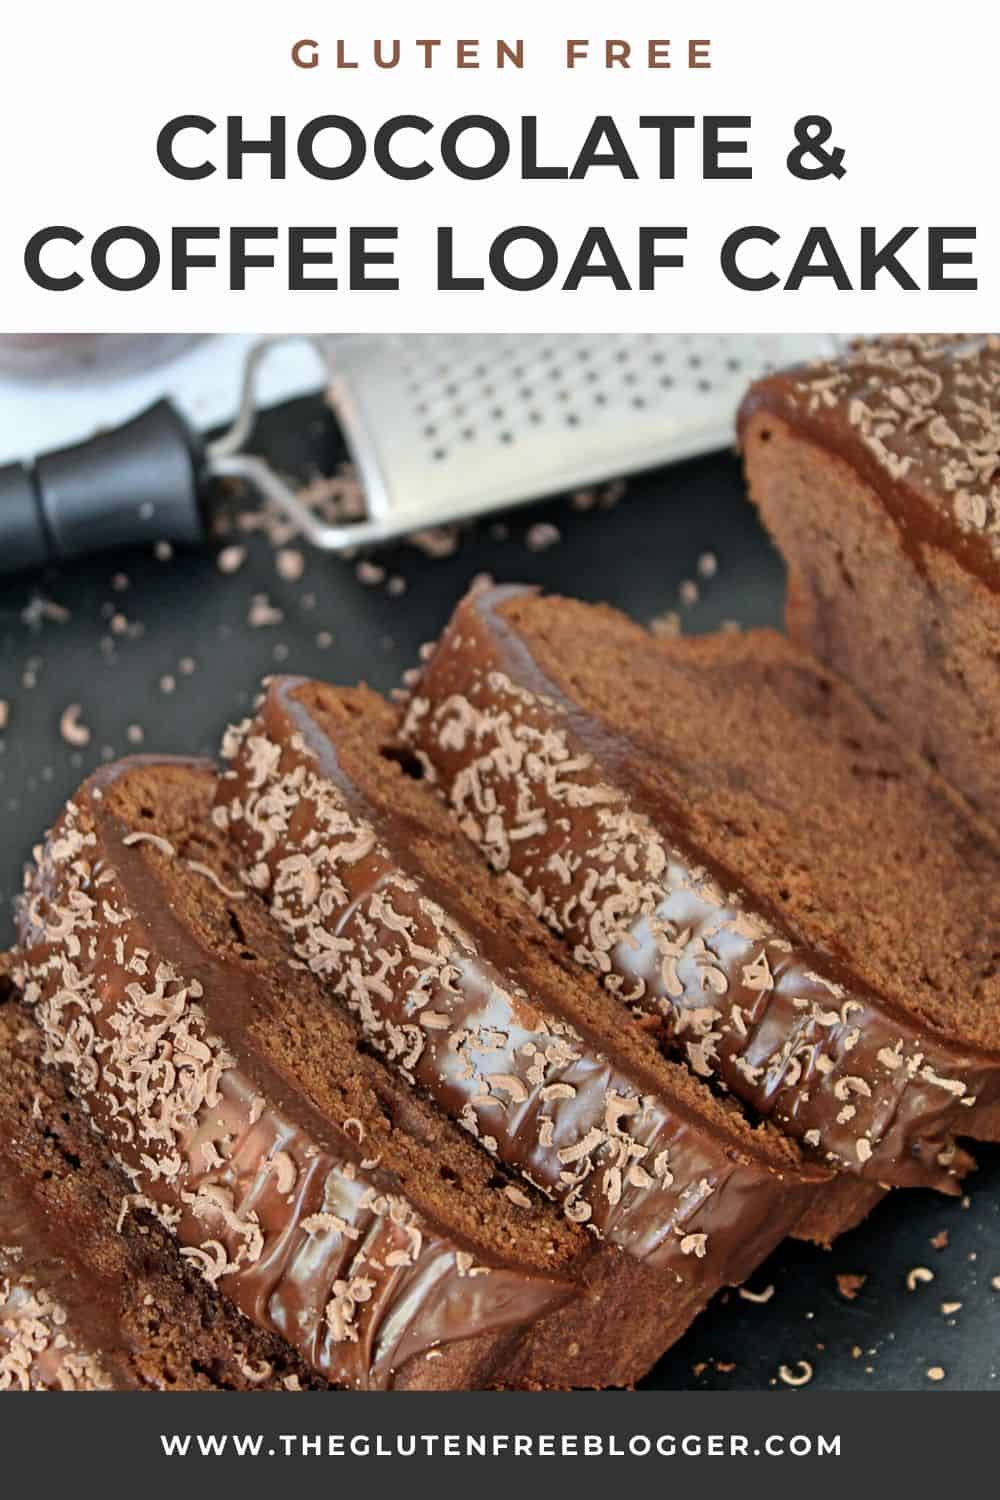 GLUTEN FREE CHOCOLATE AND COFFEE CAKE LOAF CAKE MOCHA CHOCACHINO RECIPE